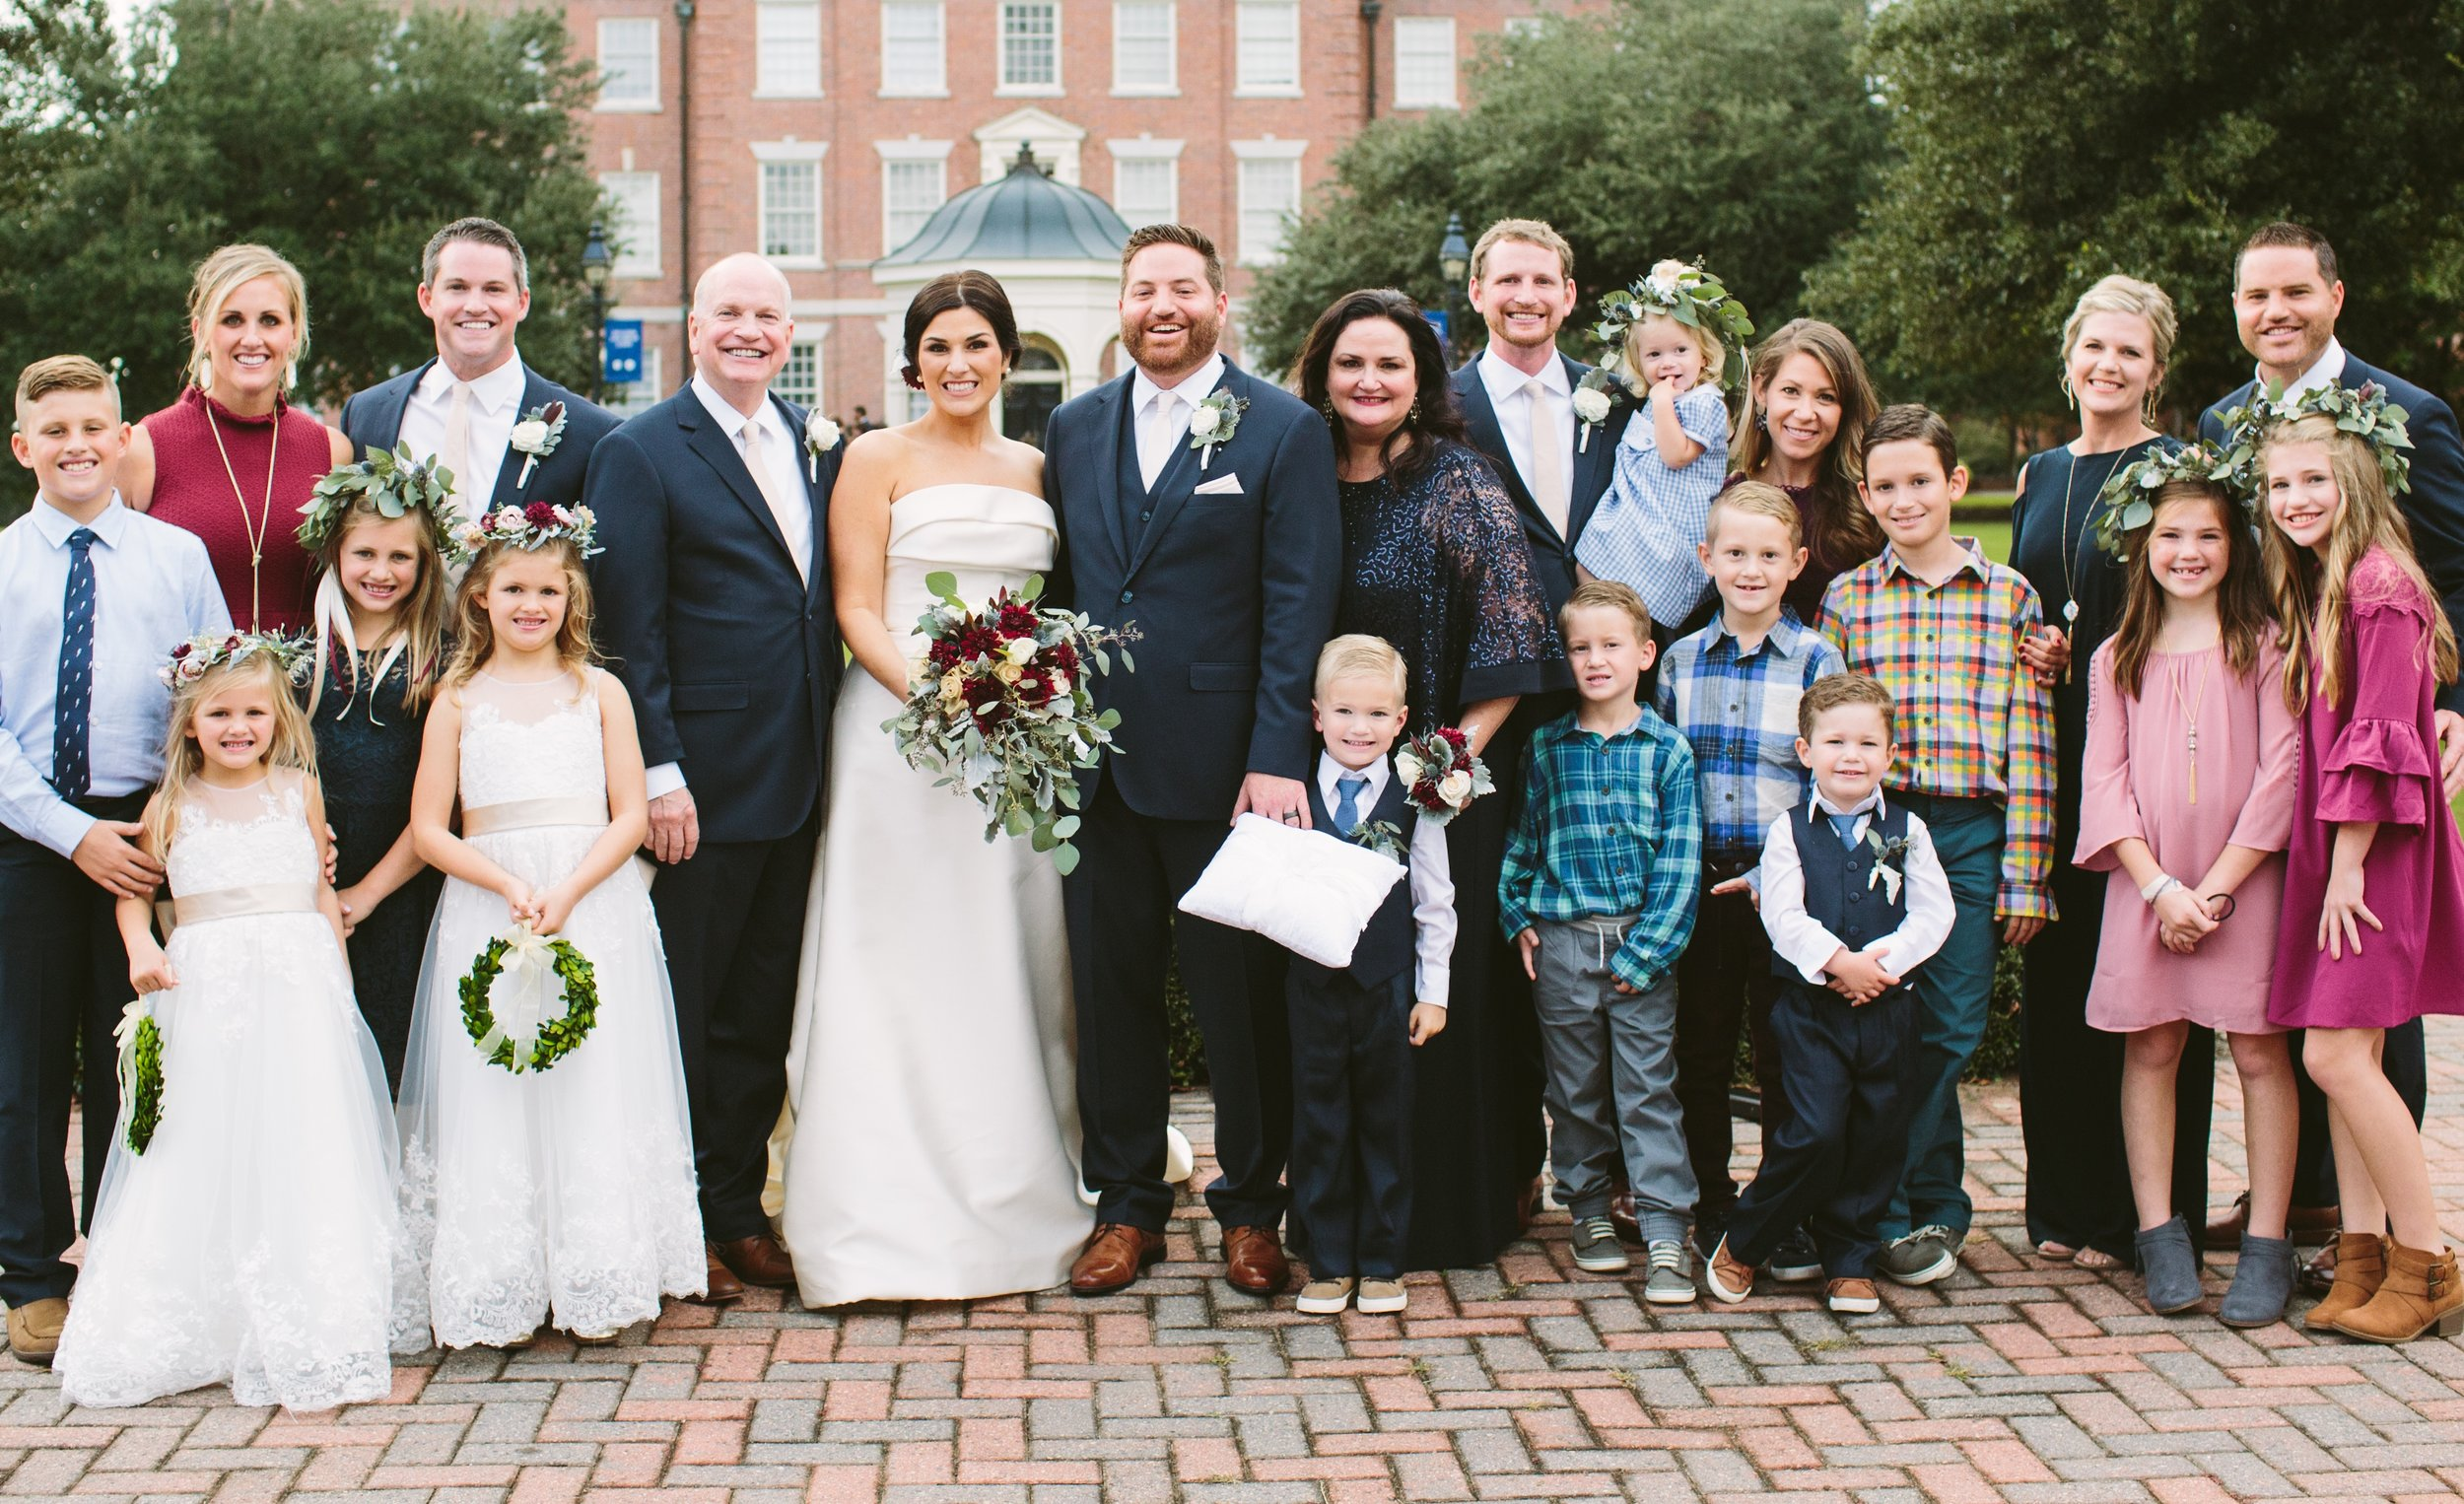 Nathan and Kelsey's Wedding October 20th, 2018